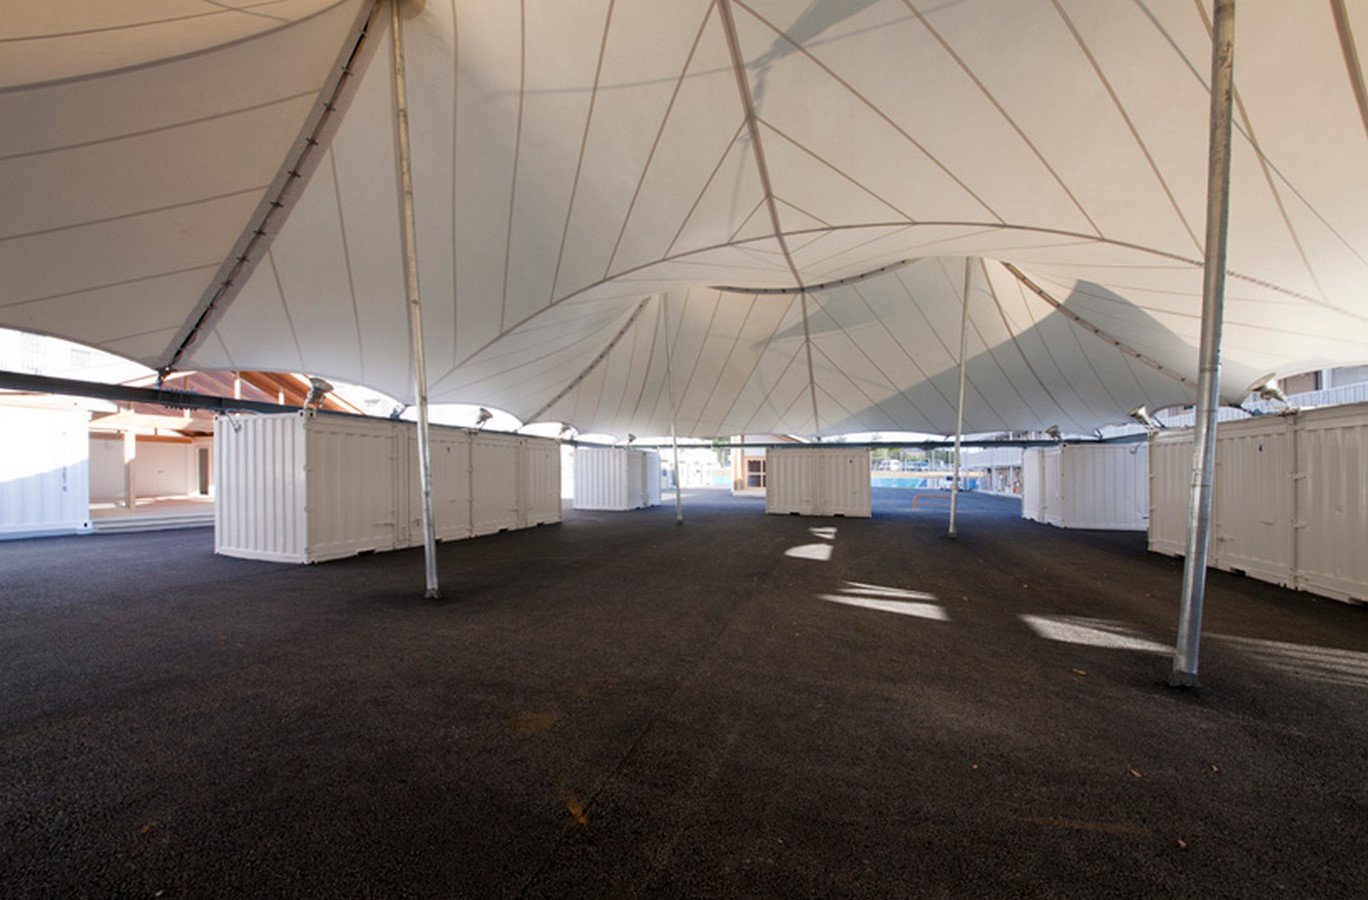 Onagawa Container by Shigeru Ban: Temporary Structures with Impactful Design Sheet10